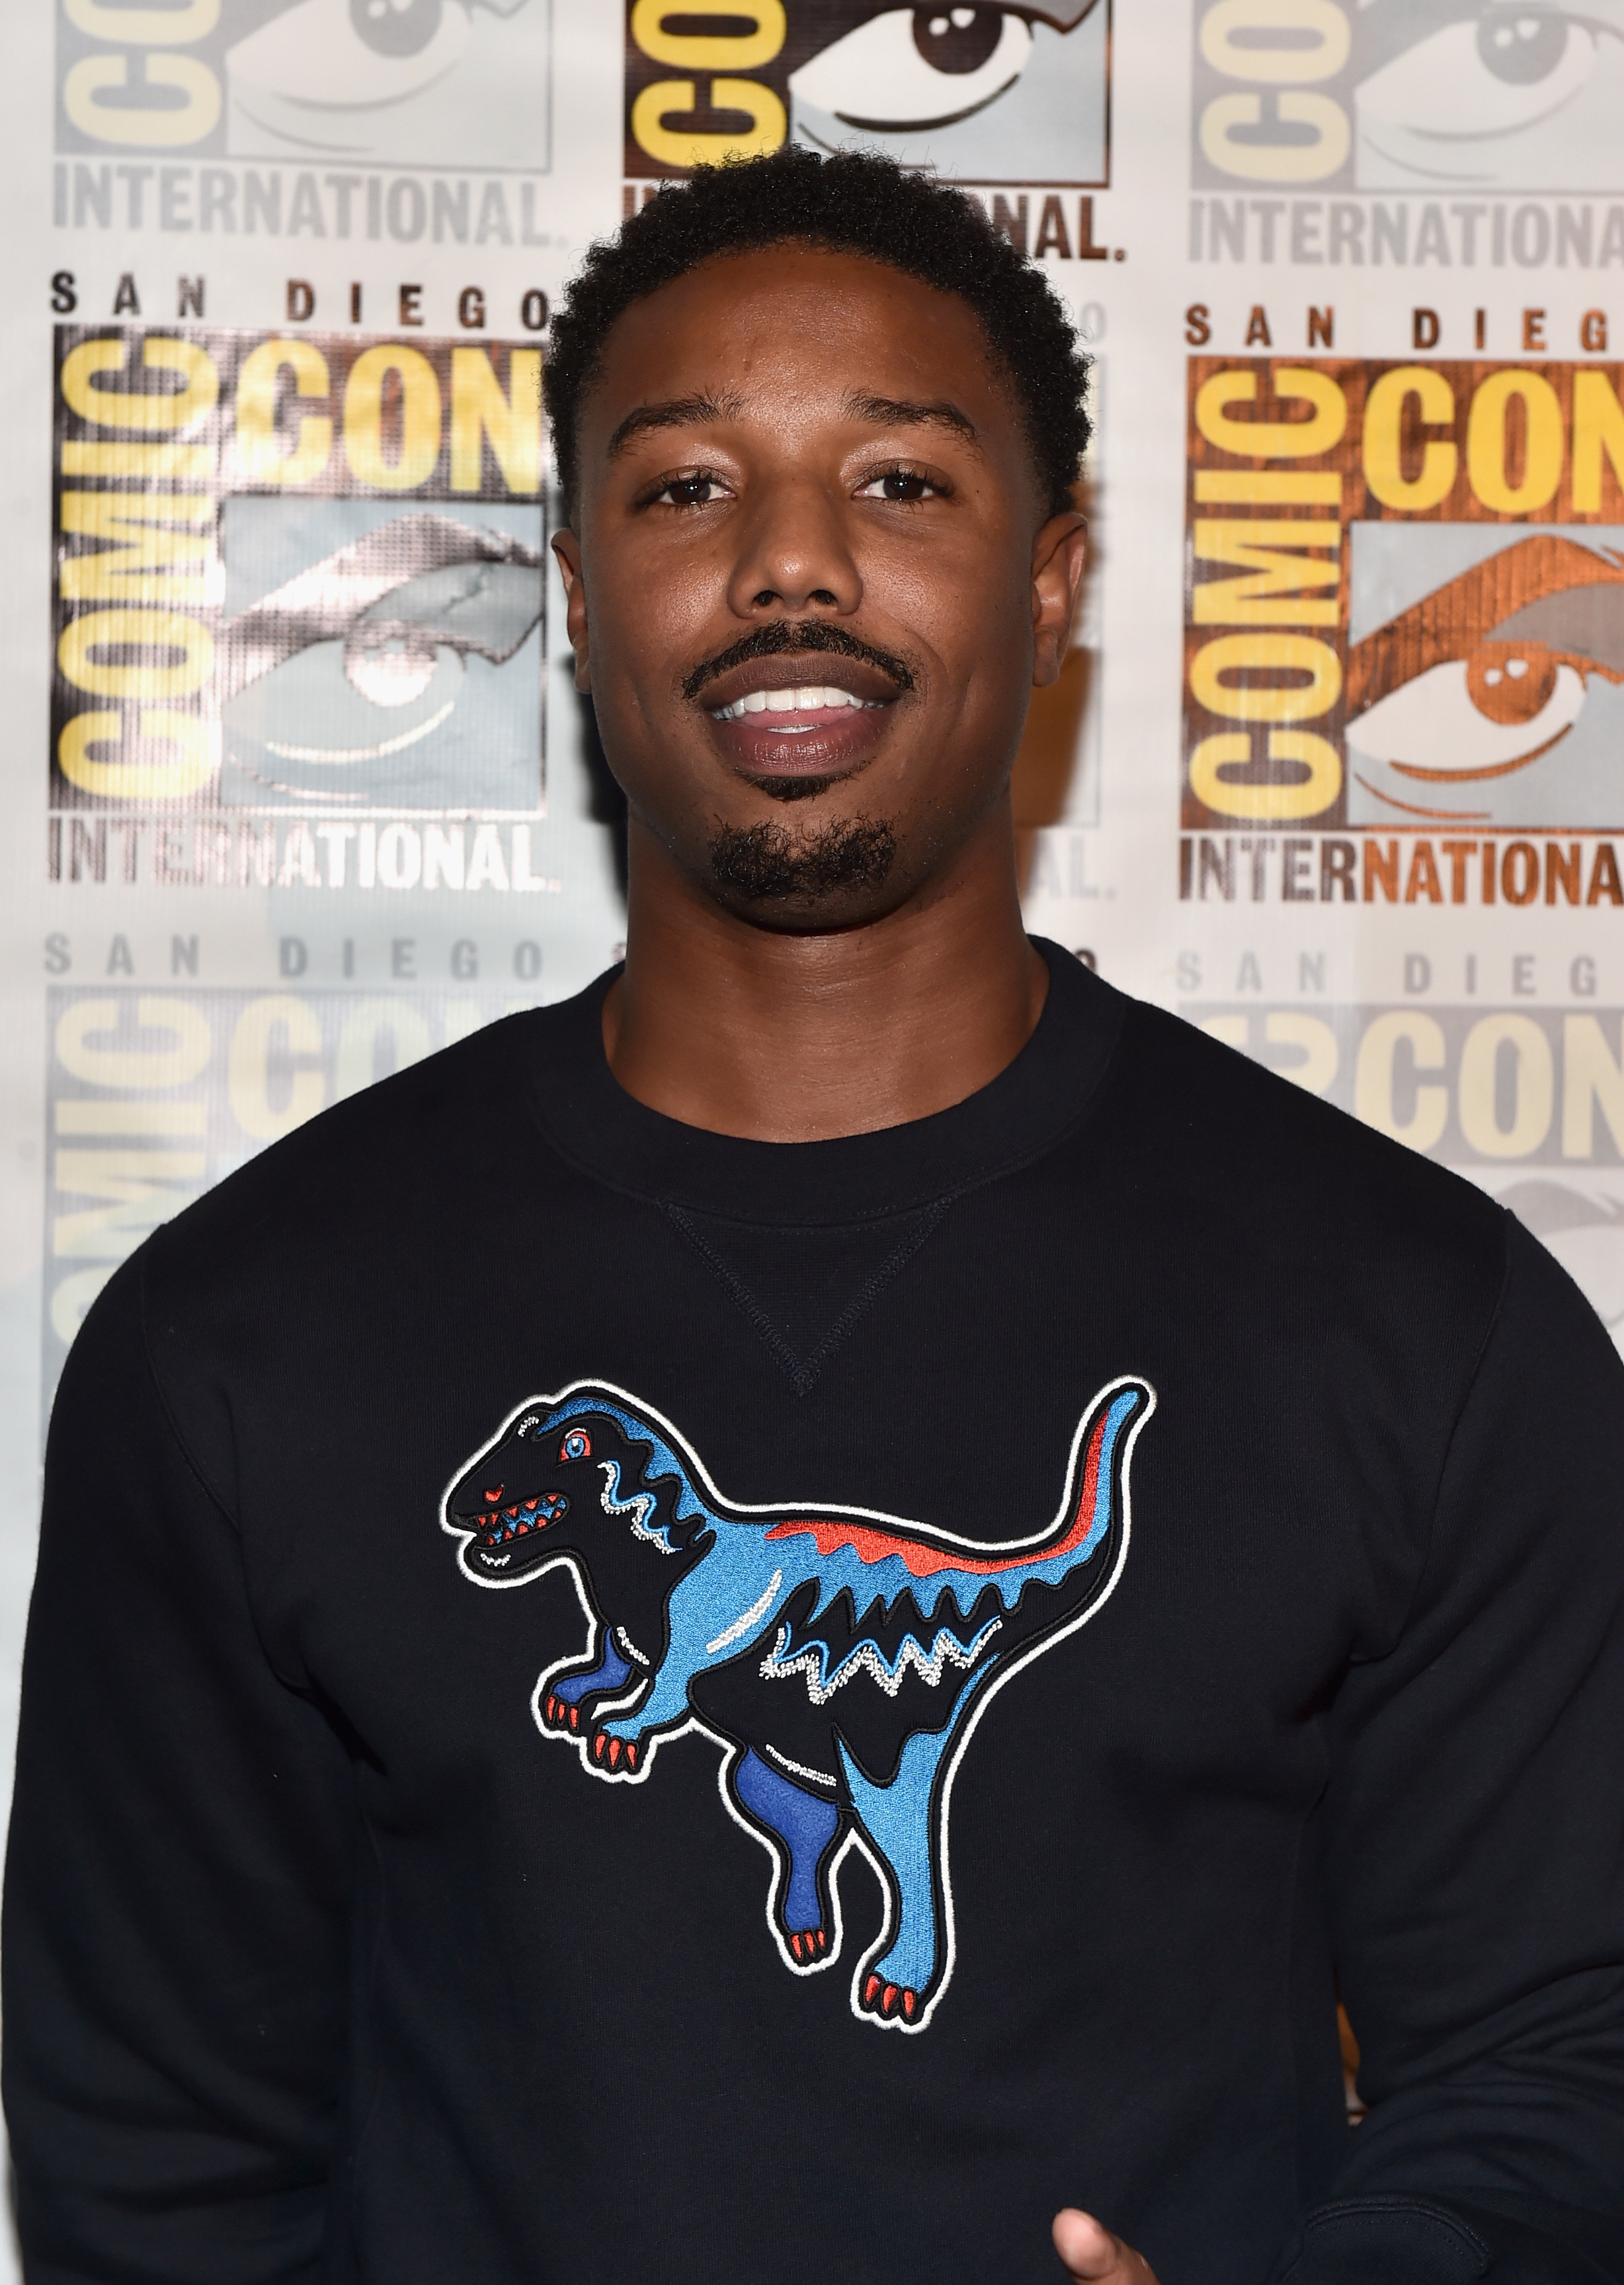 """SAN DIEGO, CA - JULY 23:  Actor Michael B. Jordan from Marvel Studios' 'Black Panther"""" attends the San Diego Comic-Con International 2016 Marvel Panel in Hall H on July 23, 2016 in San Diego, California. ©Marvel Studios 2016  (Photo by Alberto E. Rodriguez/Getty Images for Disney)"""